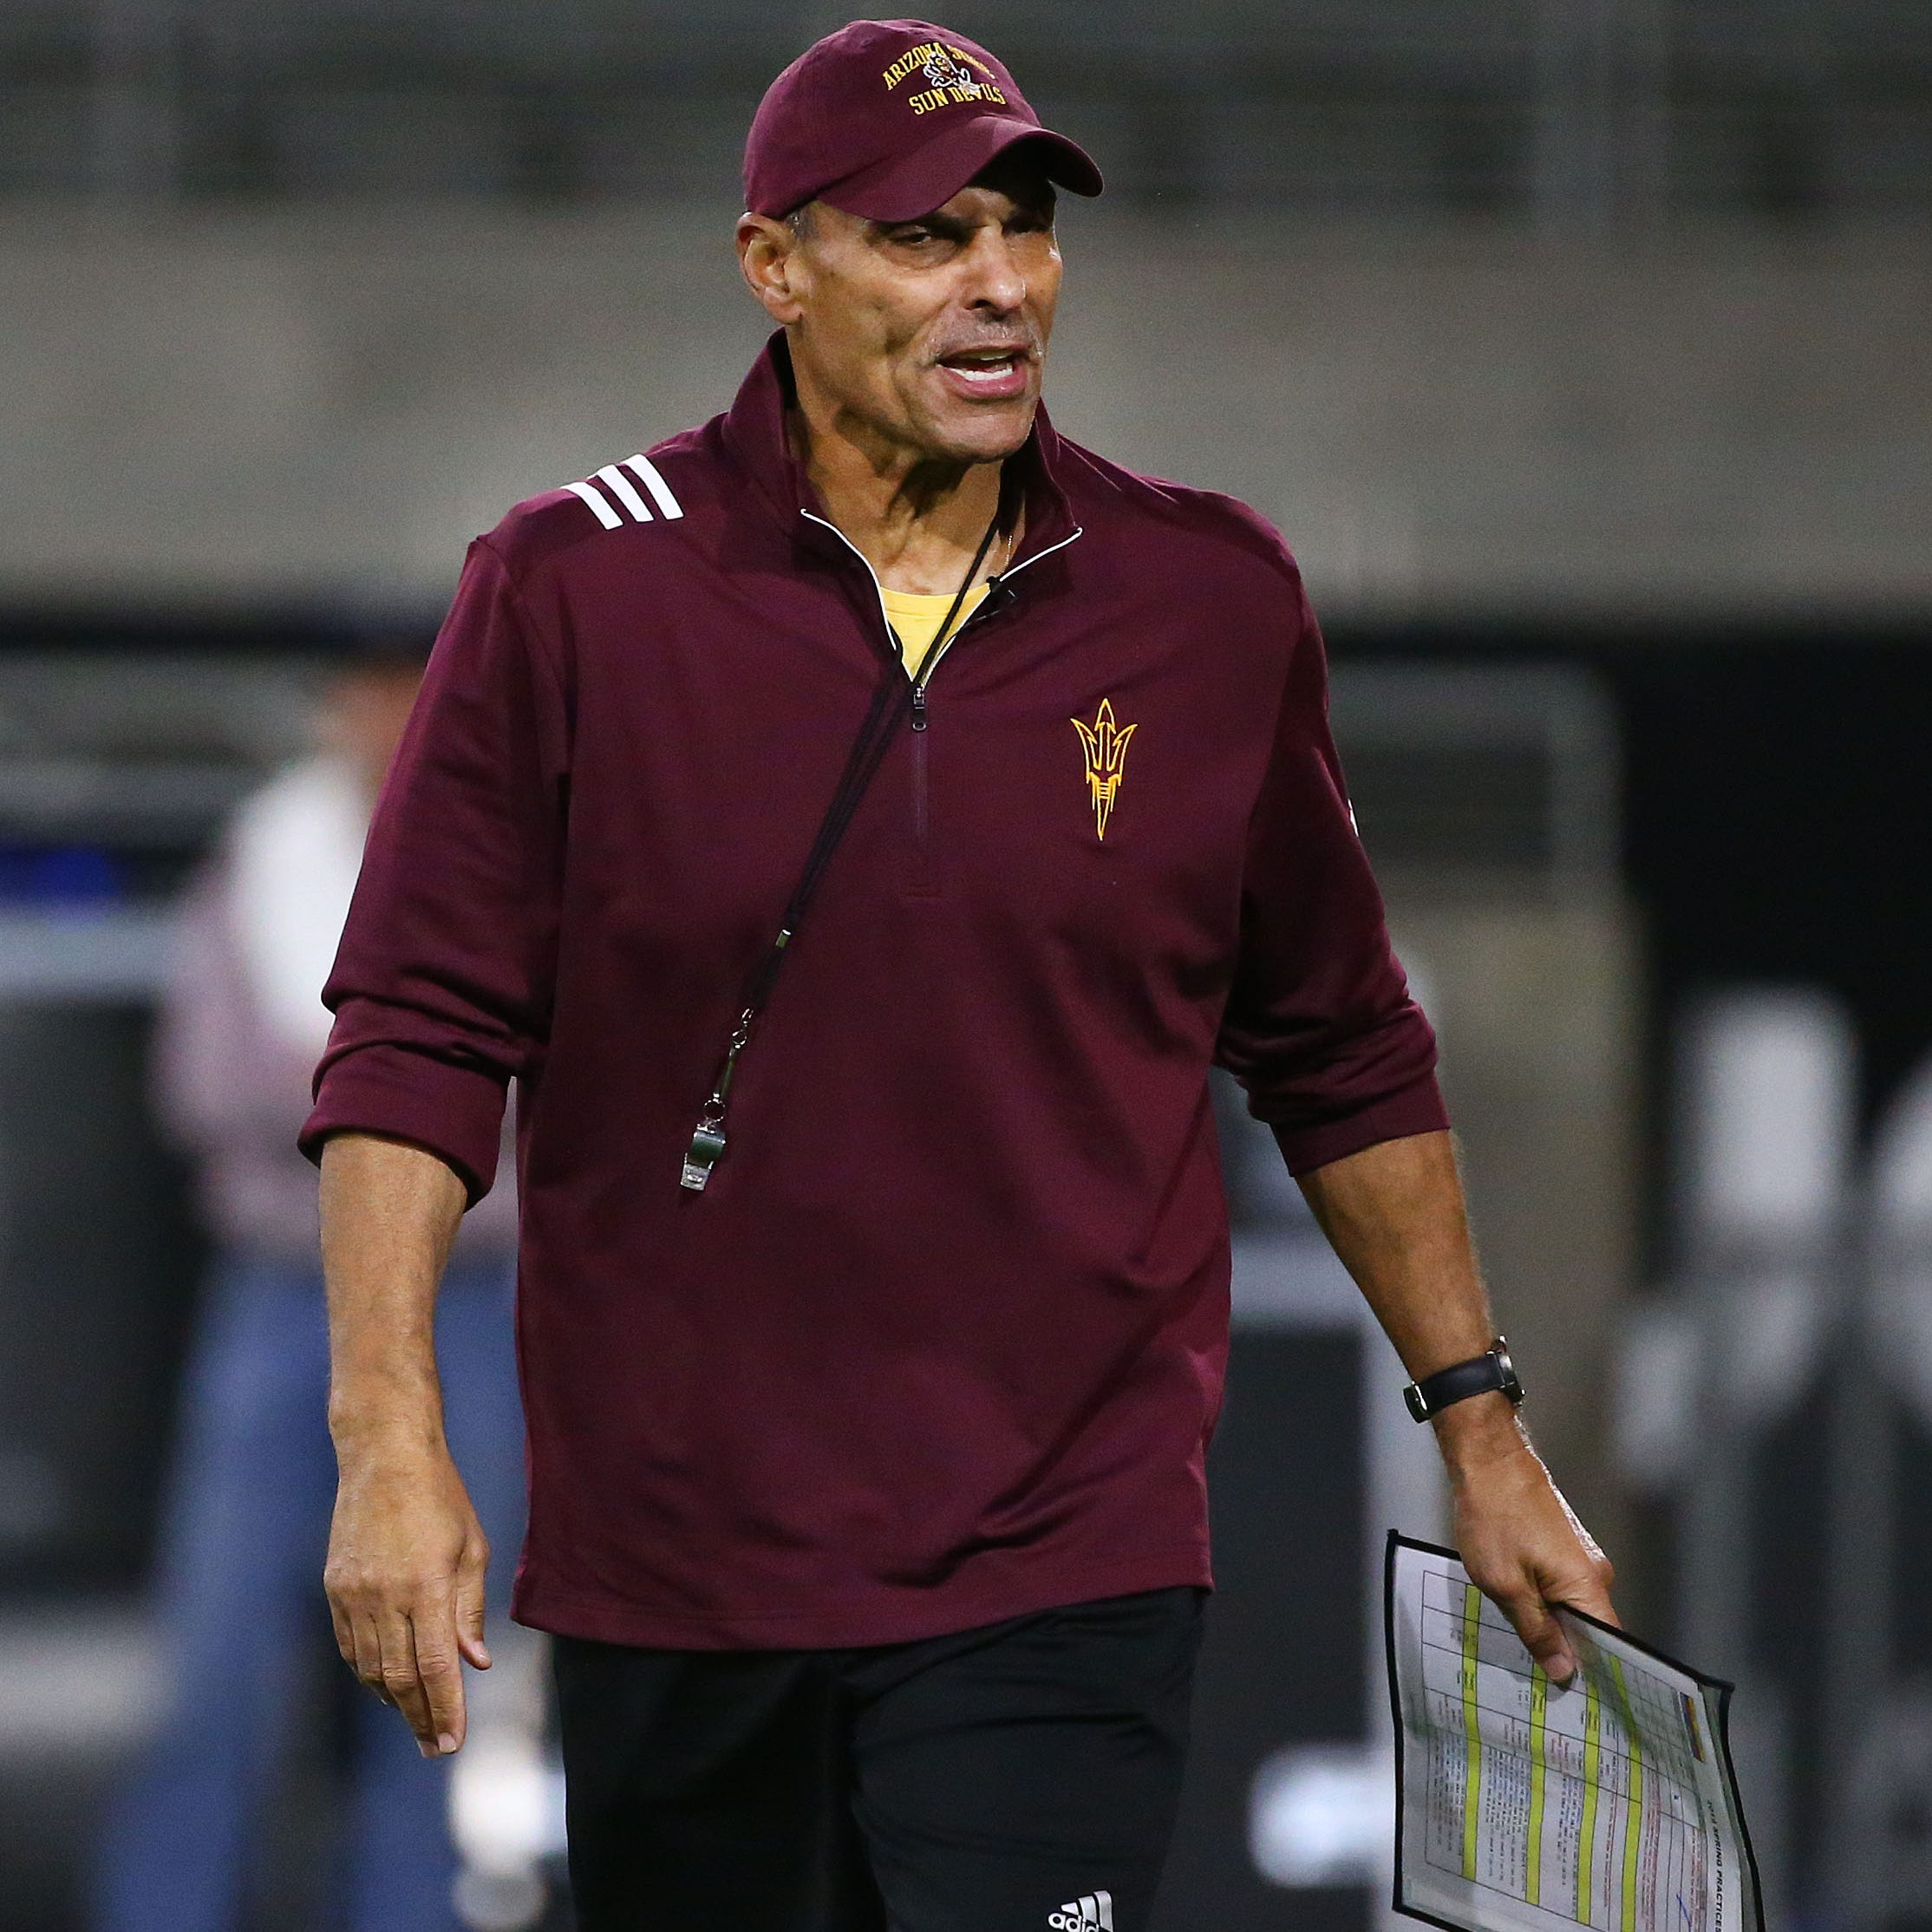 ASU football coach Herm Edwards get leg up on season with knee replacement